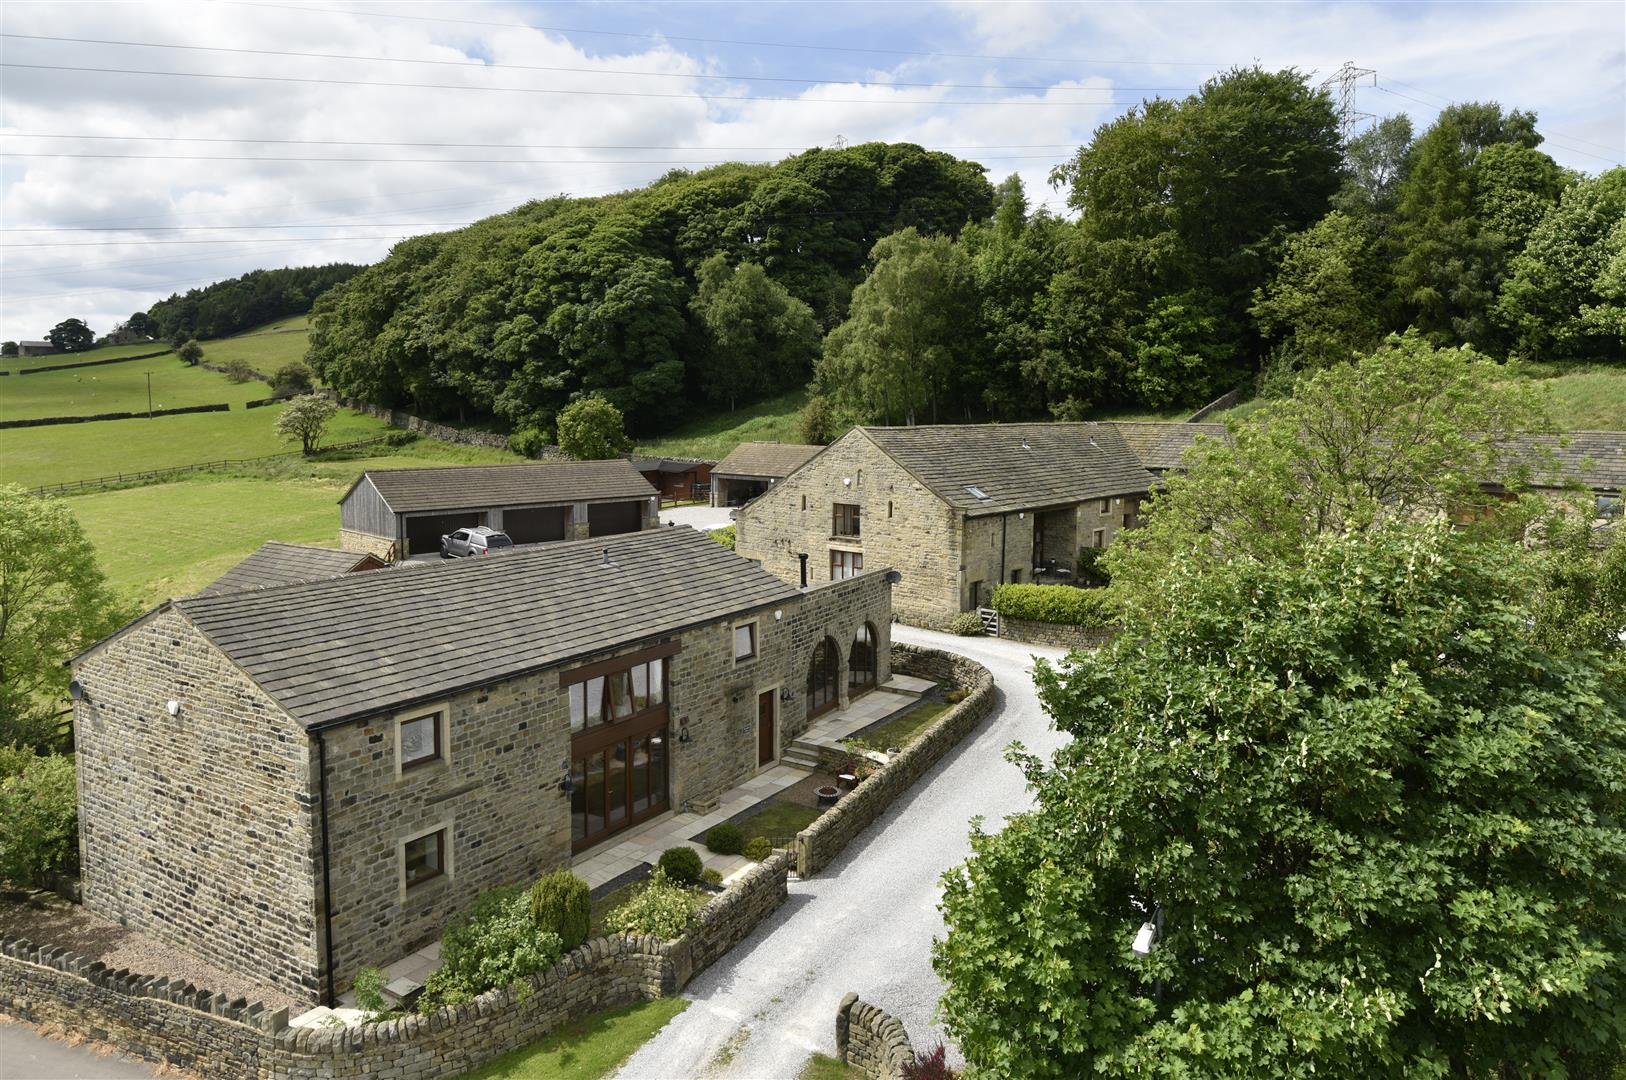 Blantyres Barn, Hill End Lane, Harden, Bingley, BD16 1DE